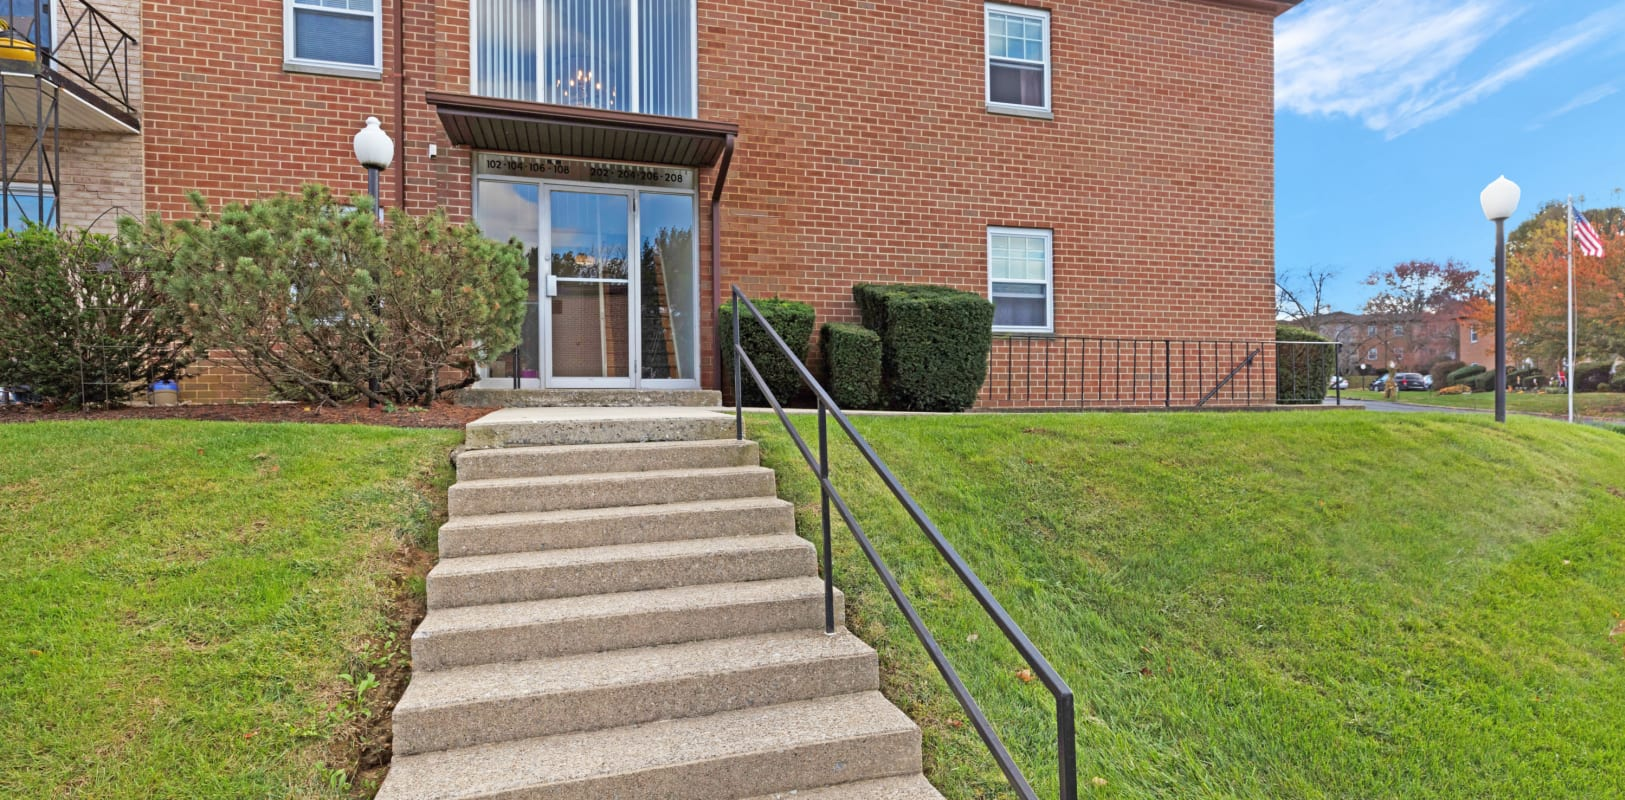 Stairs leading up to the entry of Northfield Apartments in Bethlehem, Pennsylvania